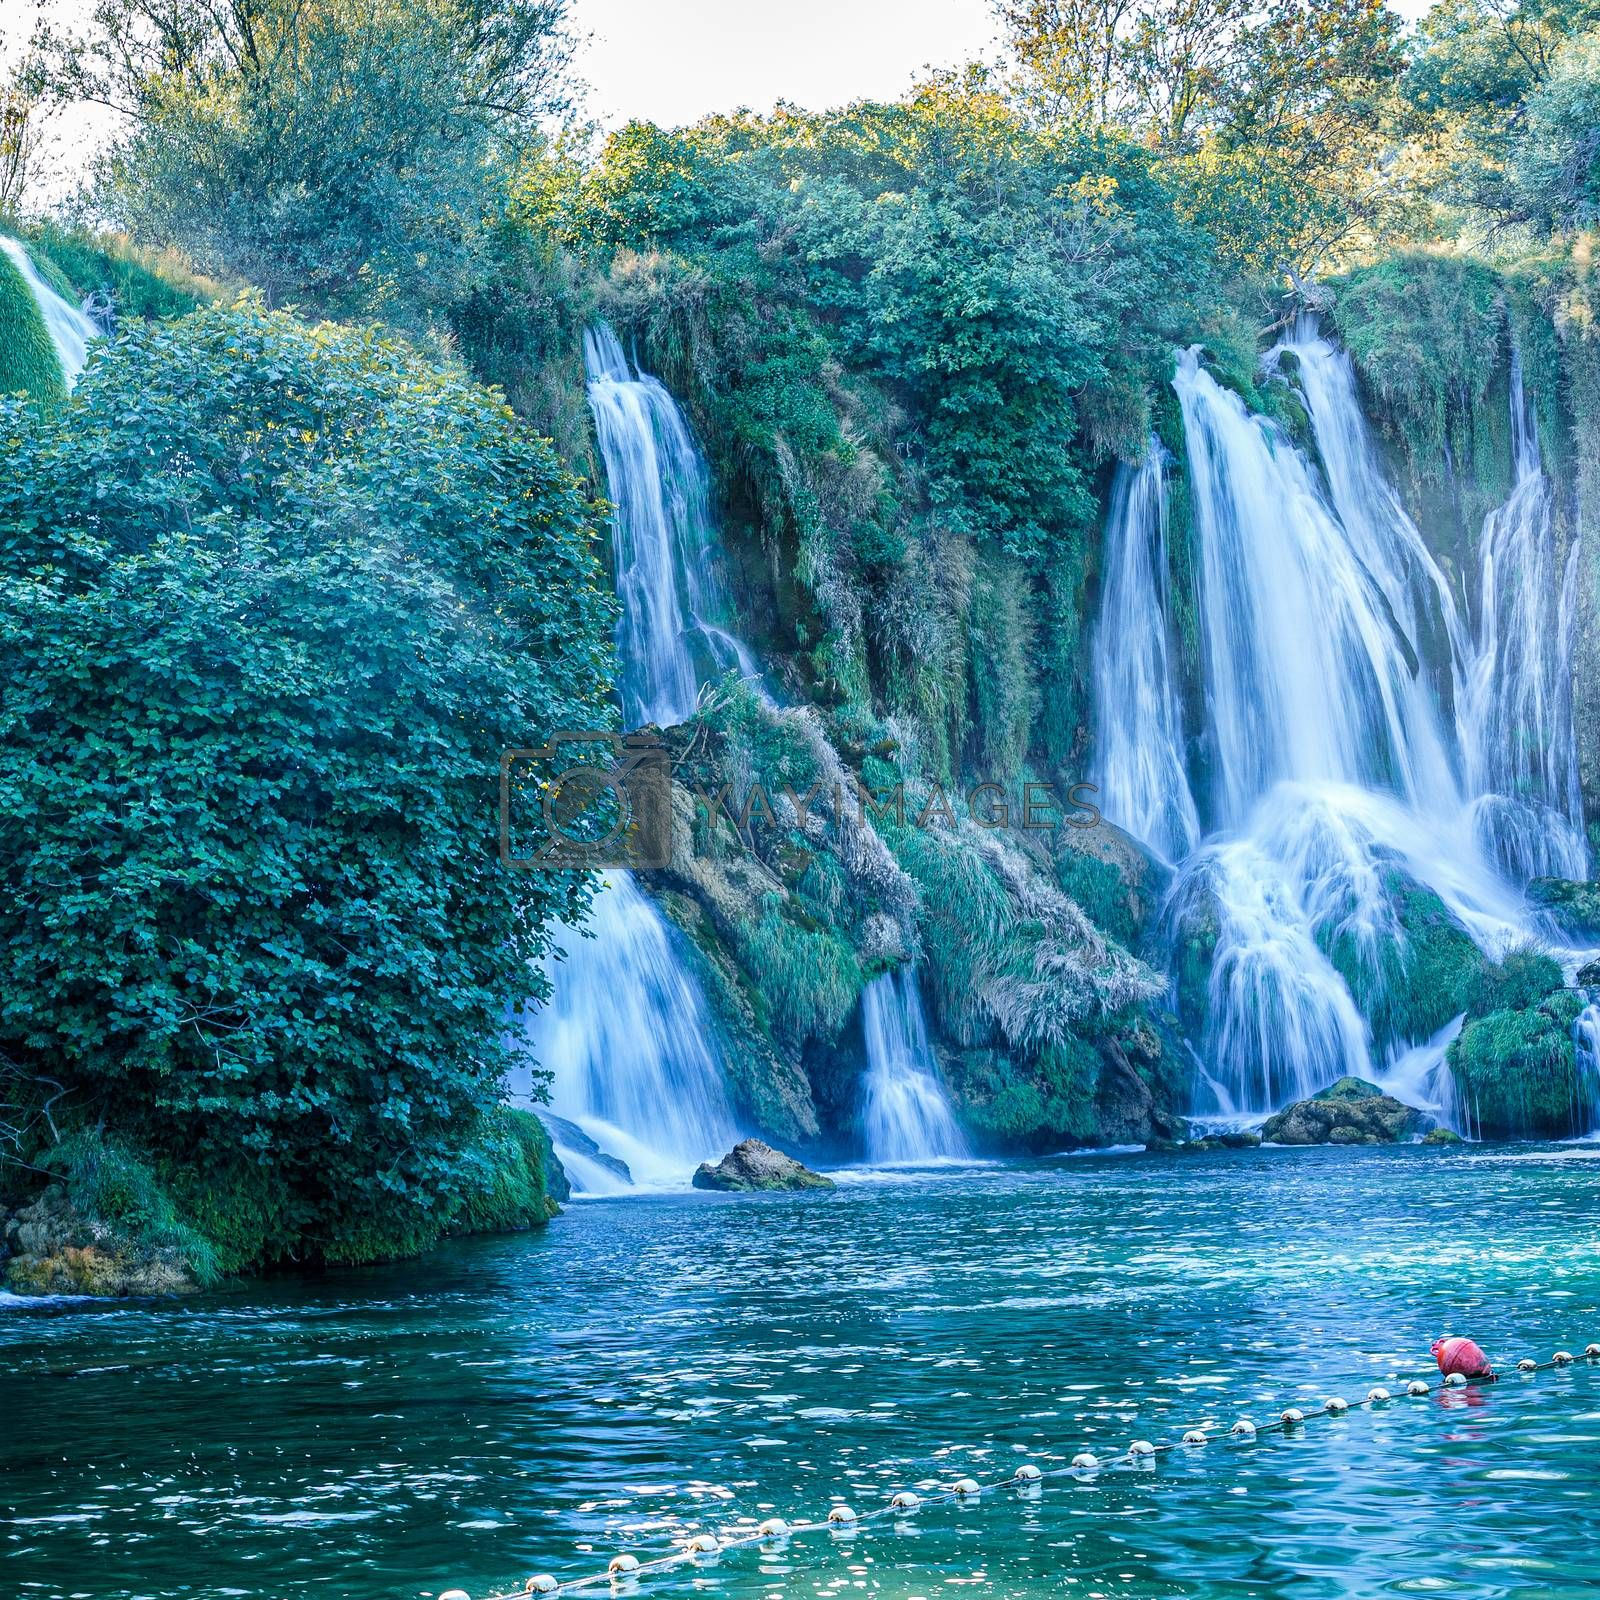 Kravice waterfall in Bosnia and Herzegovina, jets of water falling from a height of twenty-five meters  by VADIM